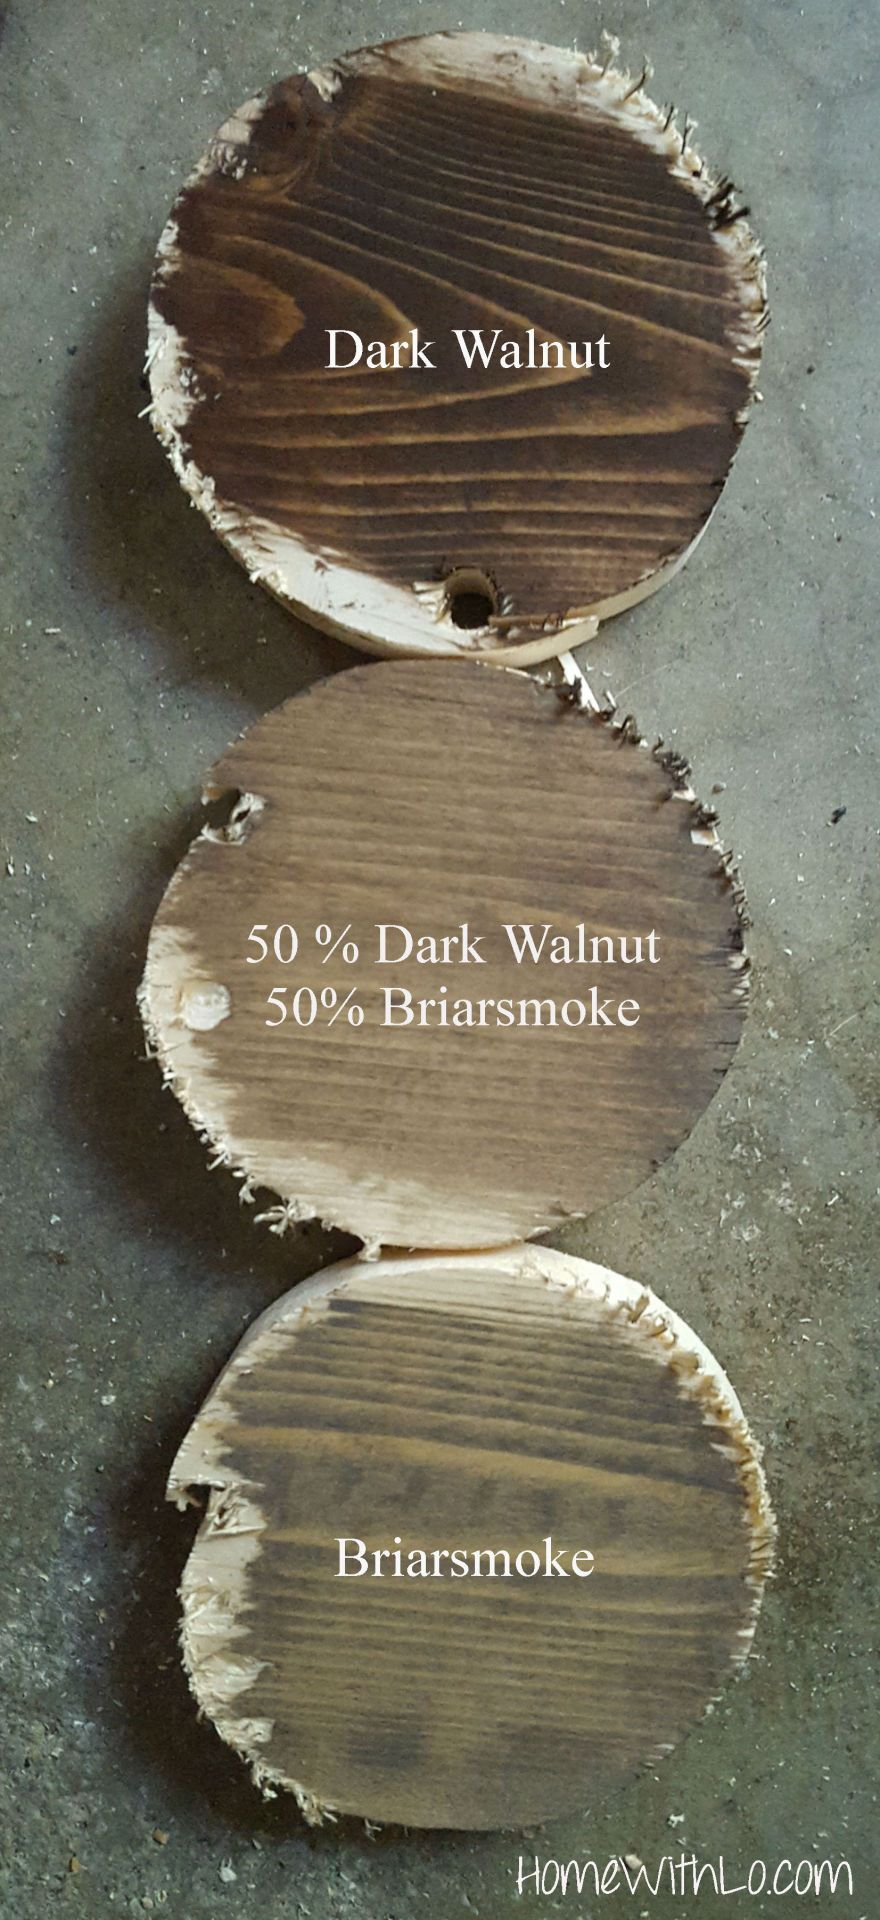 Varathane Wood Stain In Dark Walnut Briarsmoke And A Mix Of The Two More Information At Homewithlo